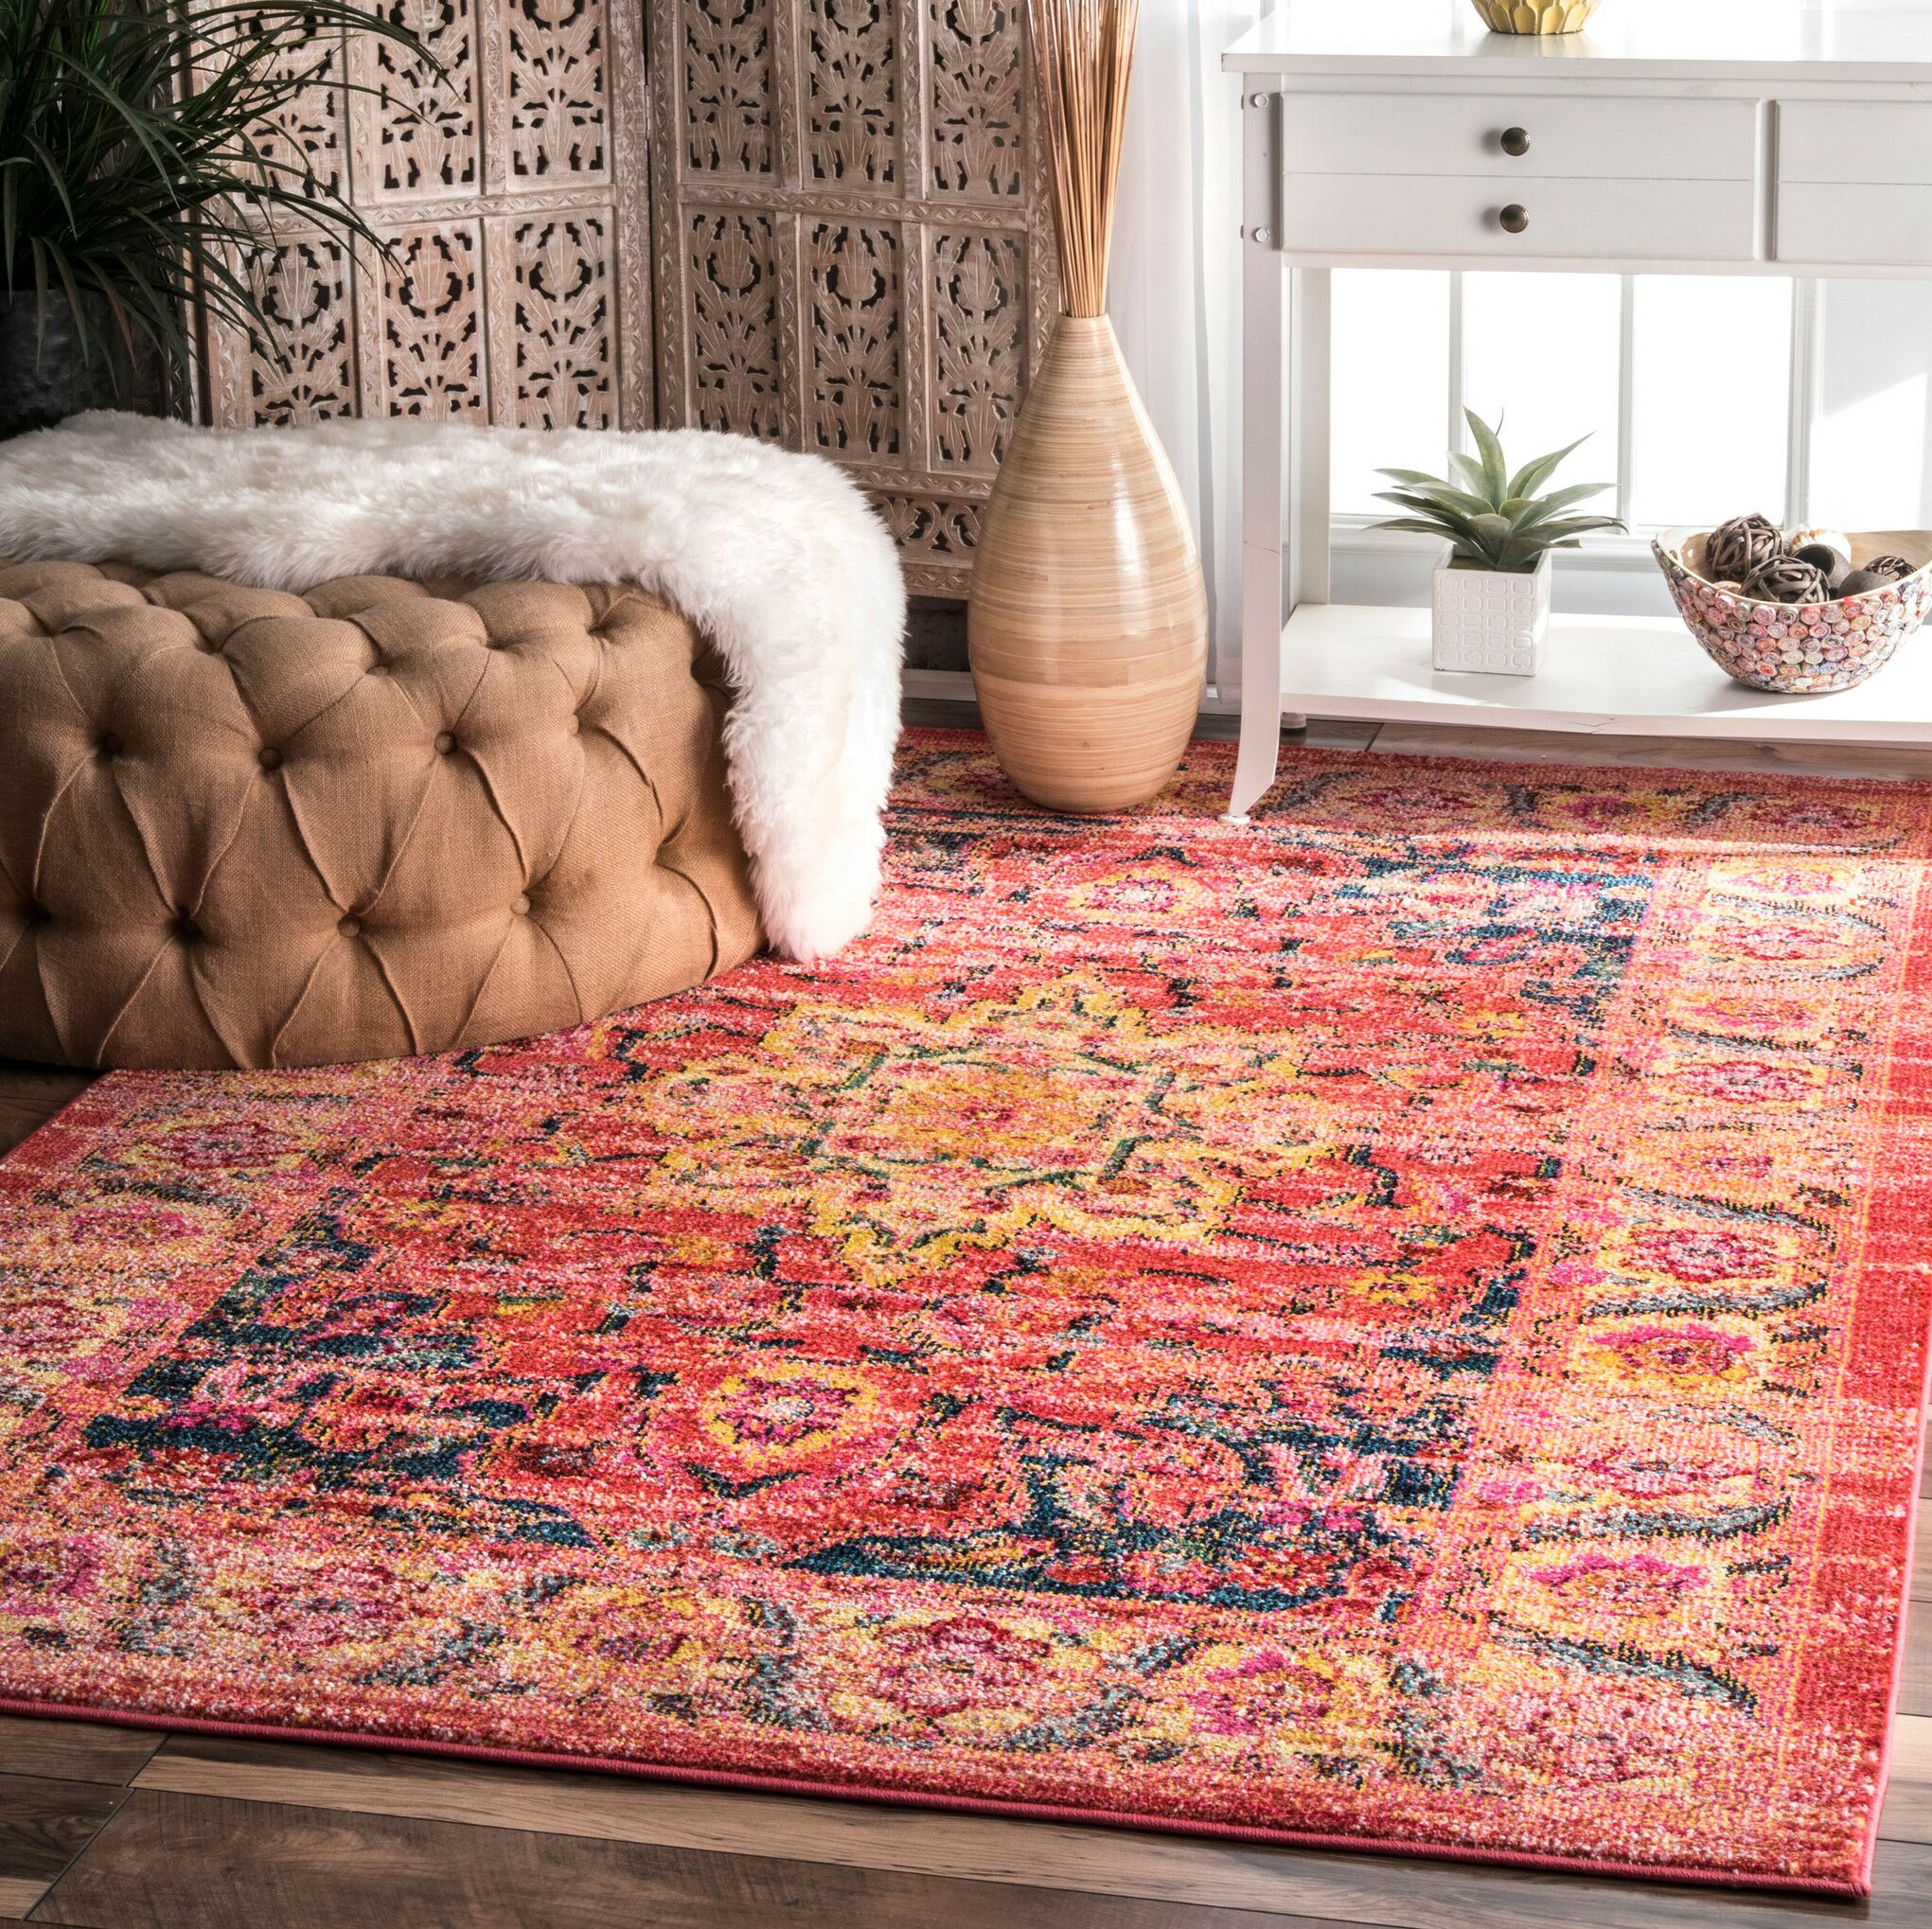 Hollowtop Multi-Colored Area Rug Rug Size: Rectangle 8' x 10'